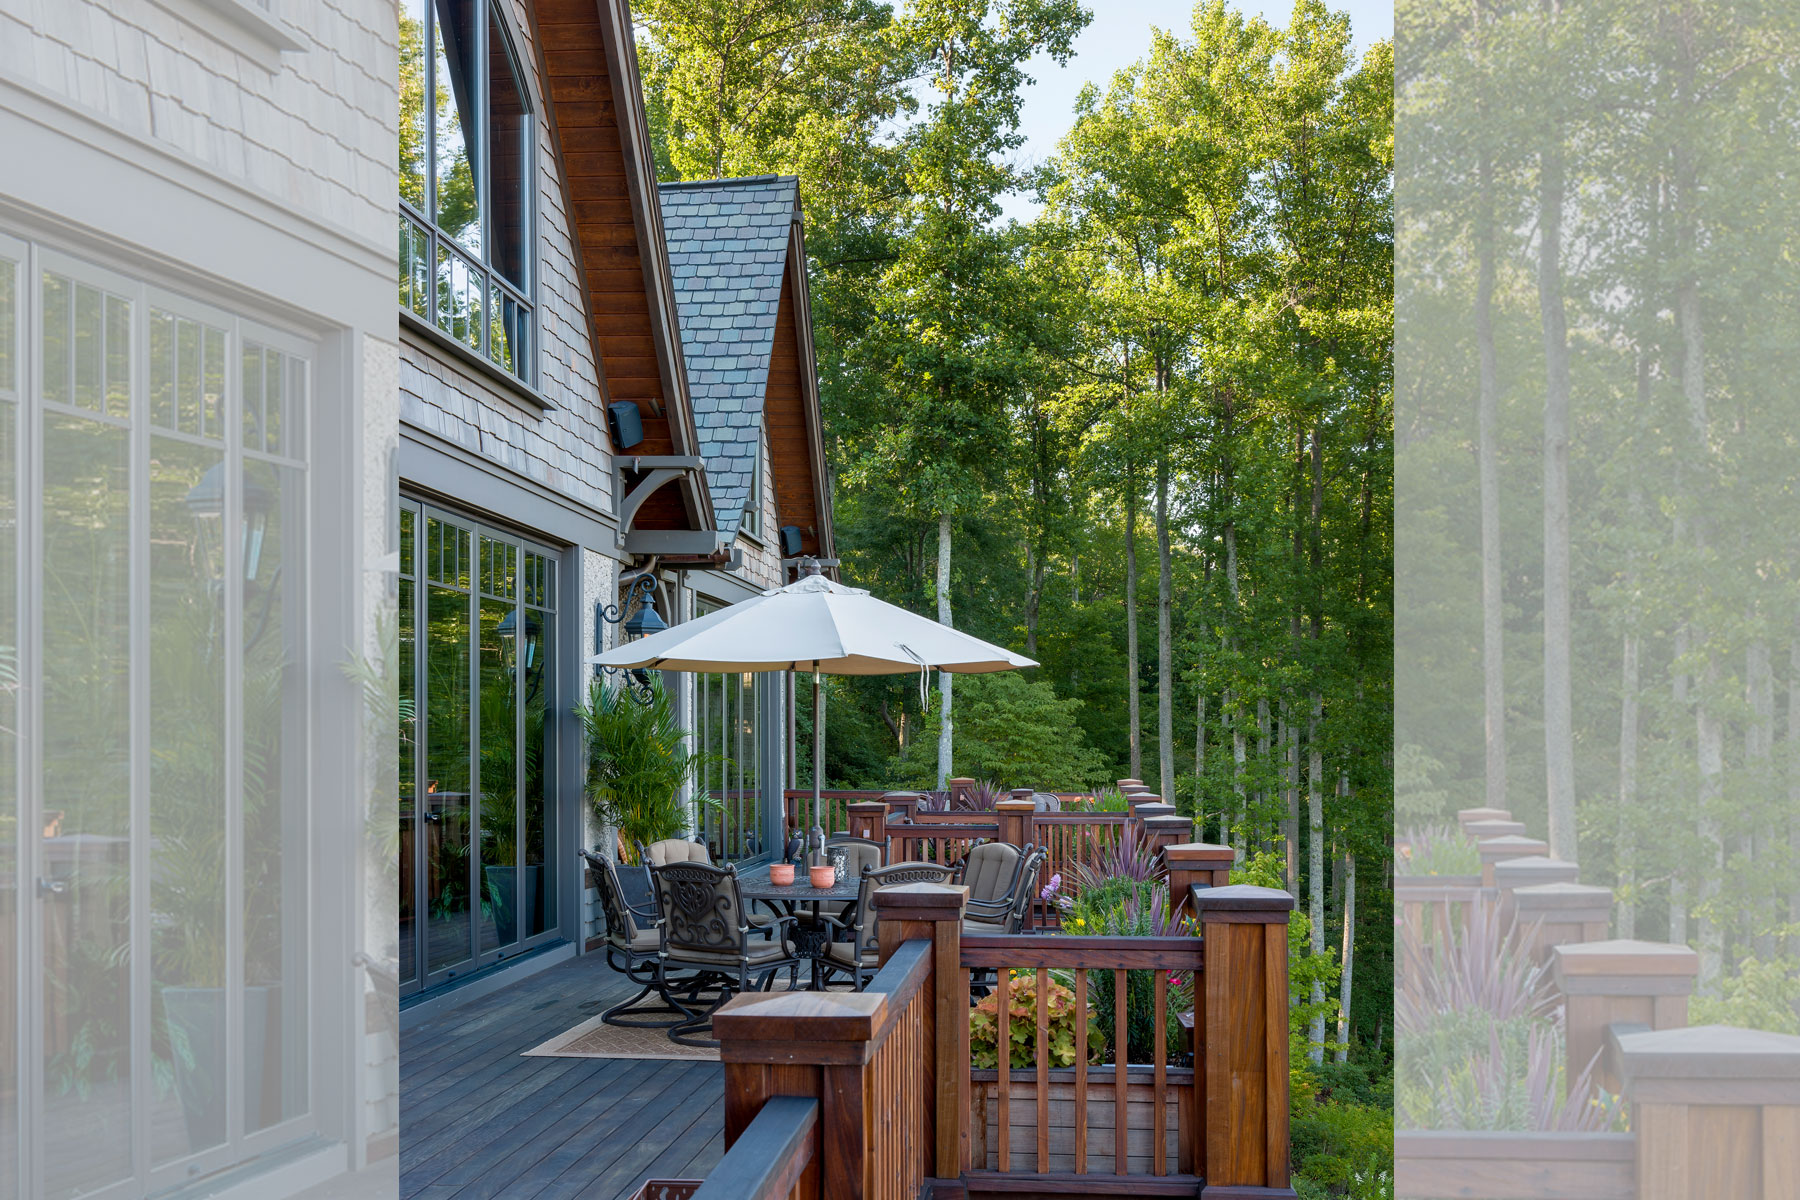 Back deck seating area in luxury mountain home renovation